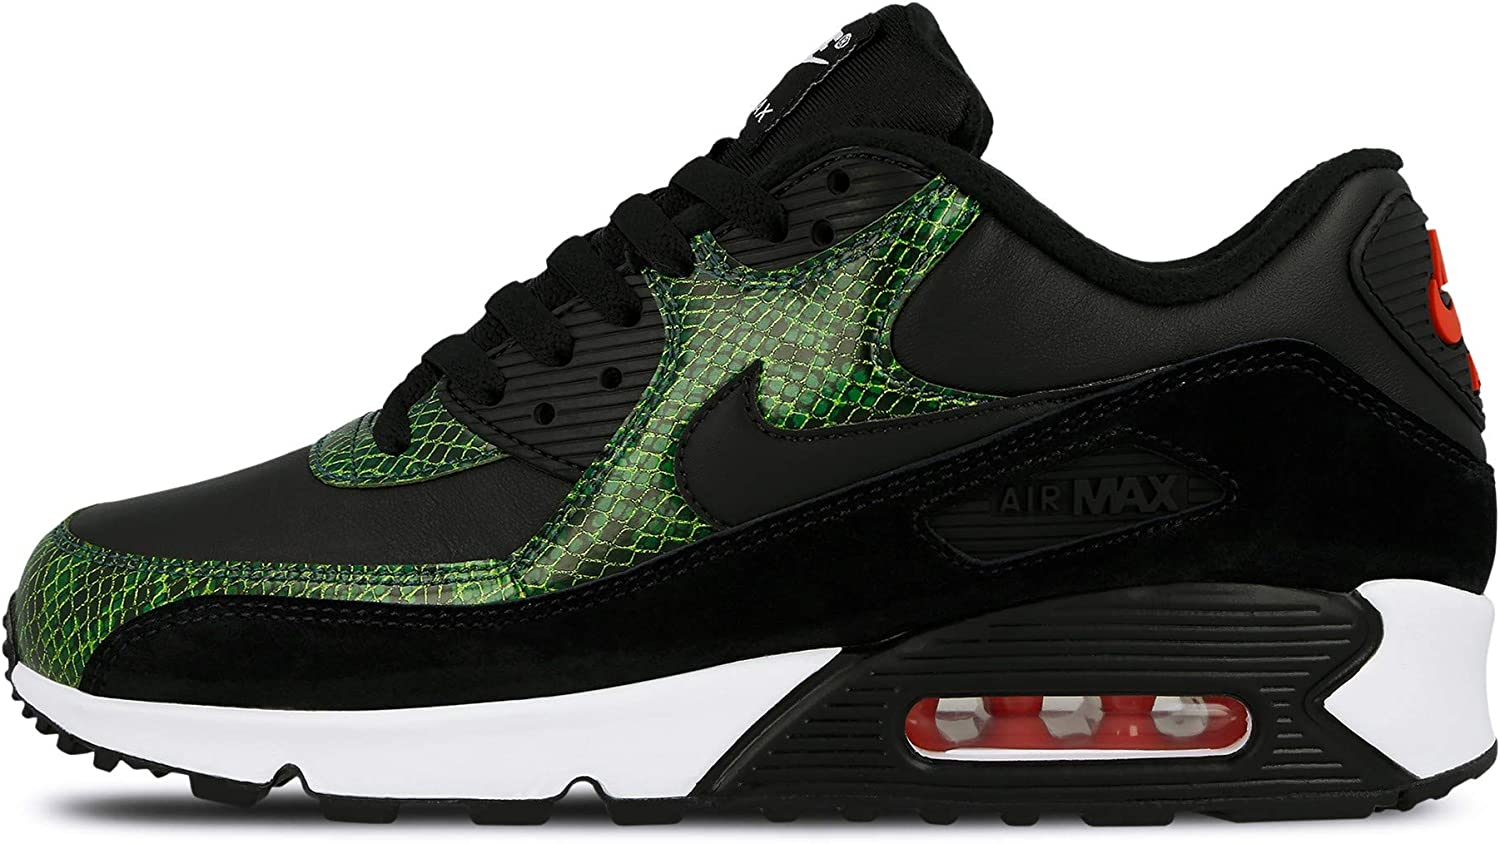 CD0916-001 Nike Air Max 90 Green Python Black Cyber-Fir